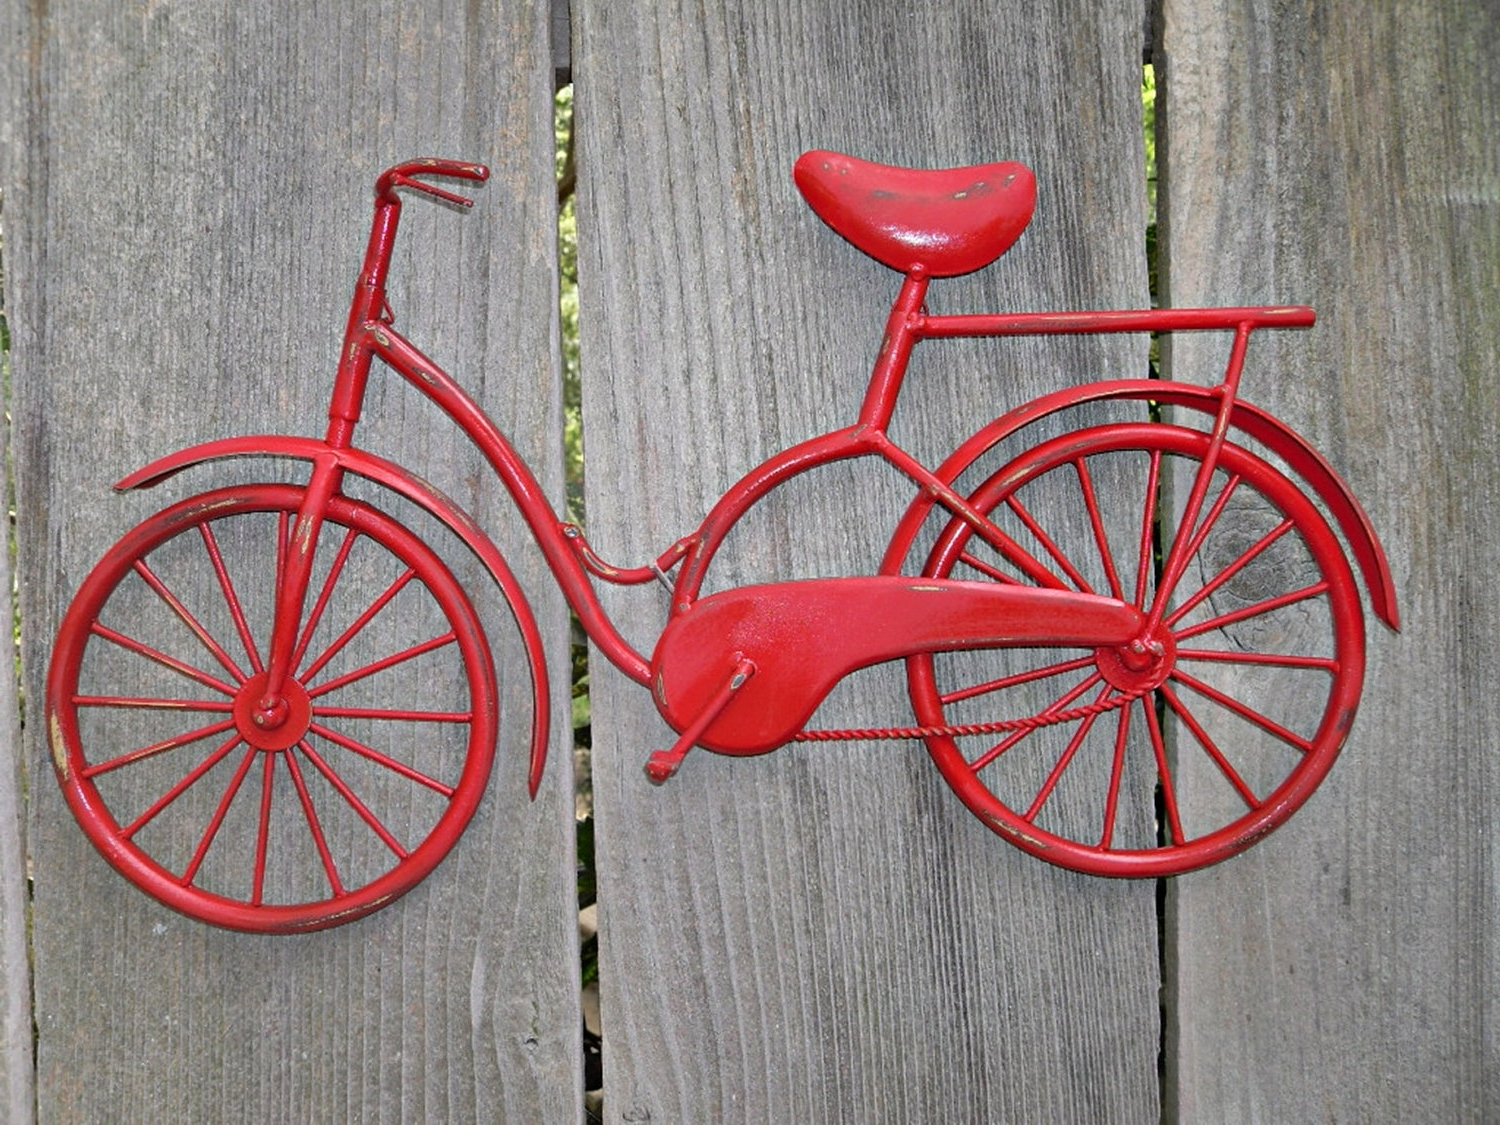 Bicycle Wall Art Decor Intended For Most Popular Metal Bicycle Wall Decor – Wall Decoration Ideas (View 3 of 15)